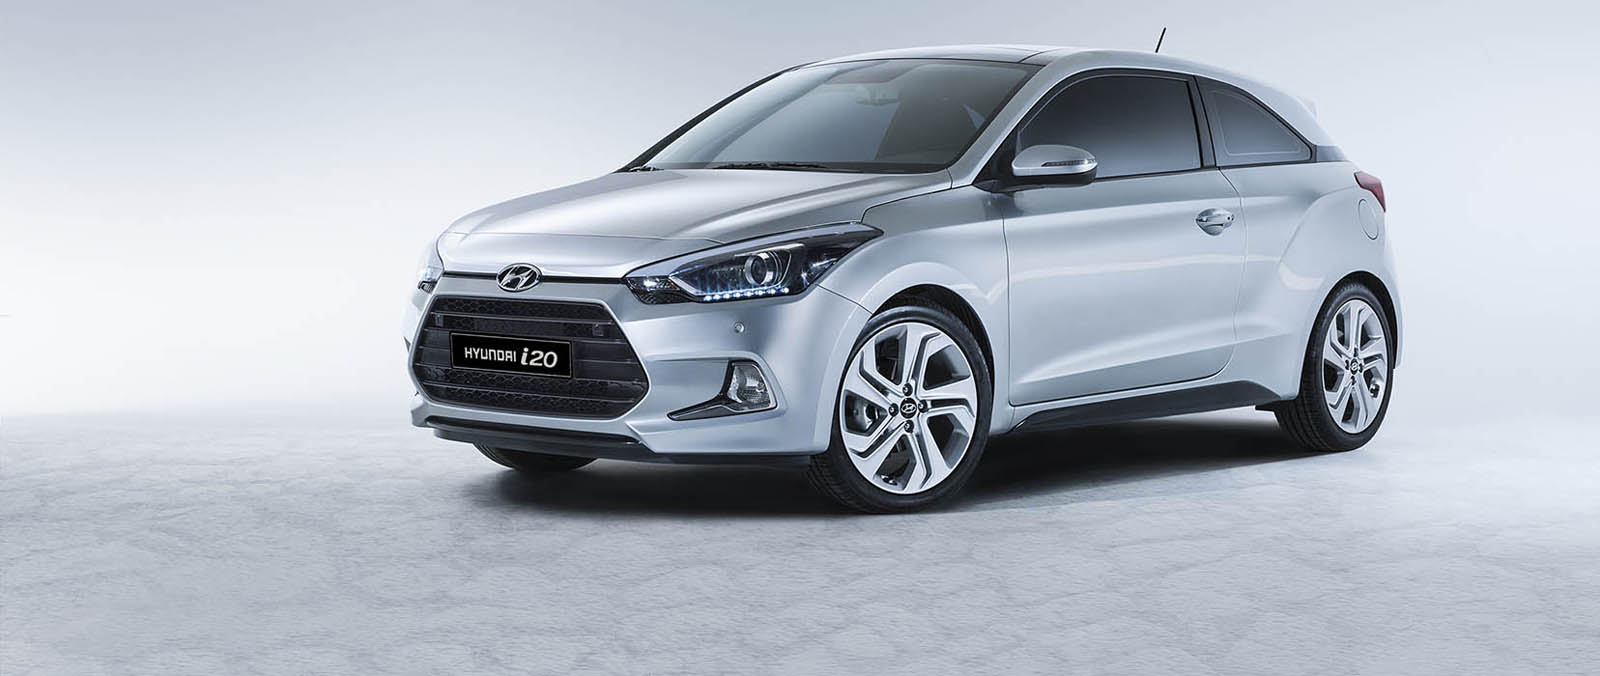 Dit is de Hyundai i20 Coupe